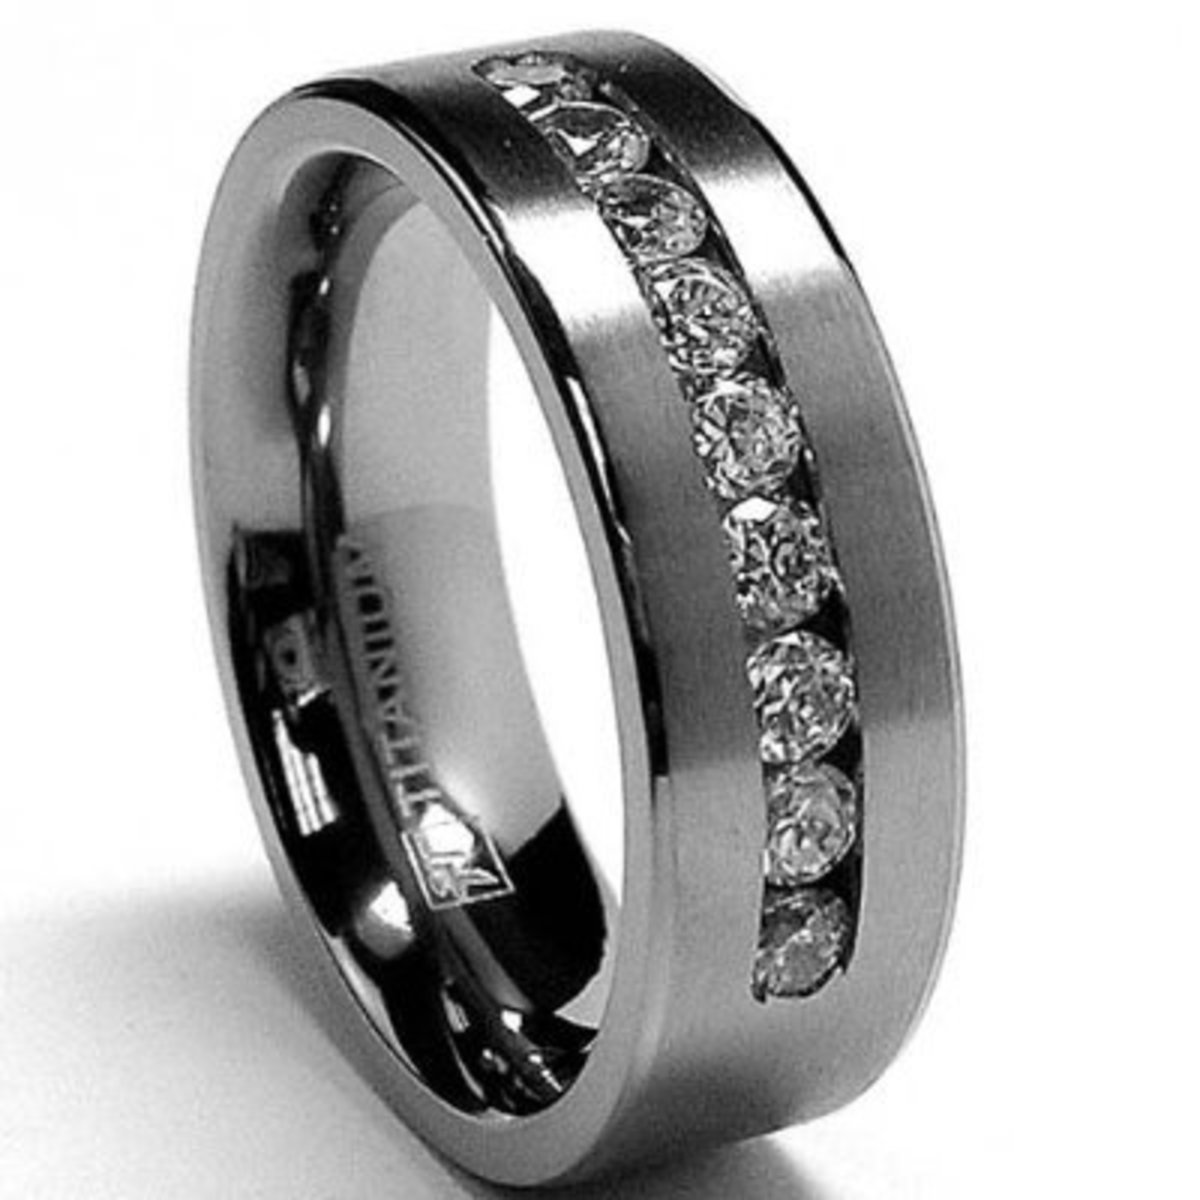 Metal Masters Co. 8 MM Men's Titanium ring wedding band with 9 large Channel Set